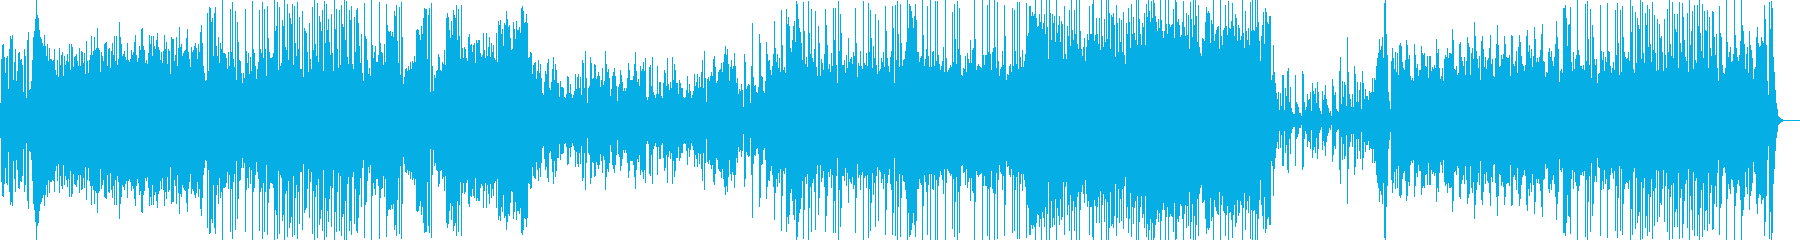 Classy and cute fantasy waltz's reproduced waveform